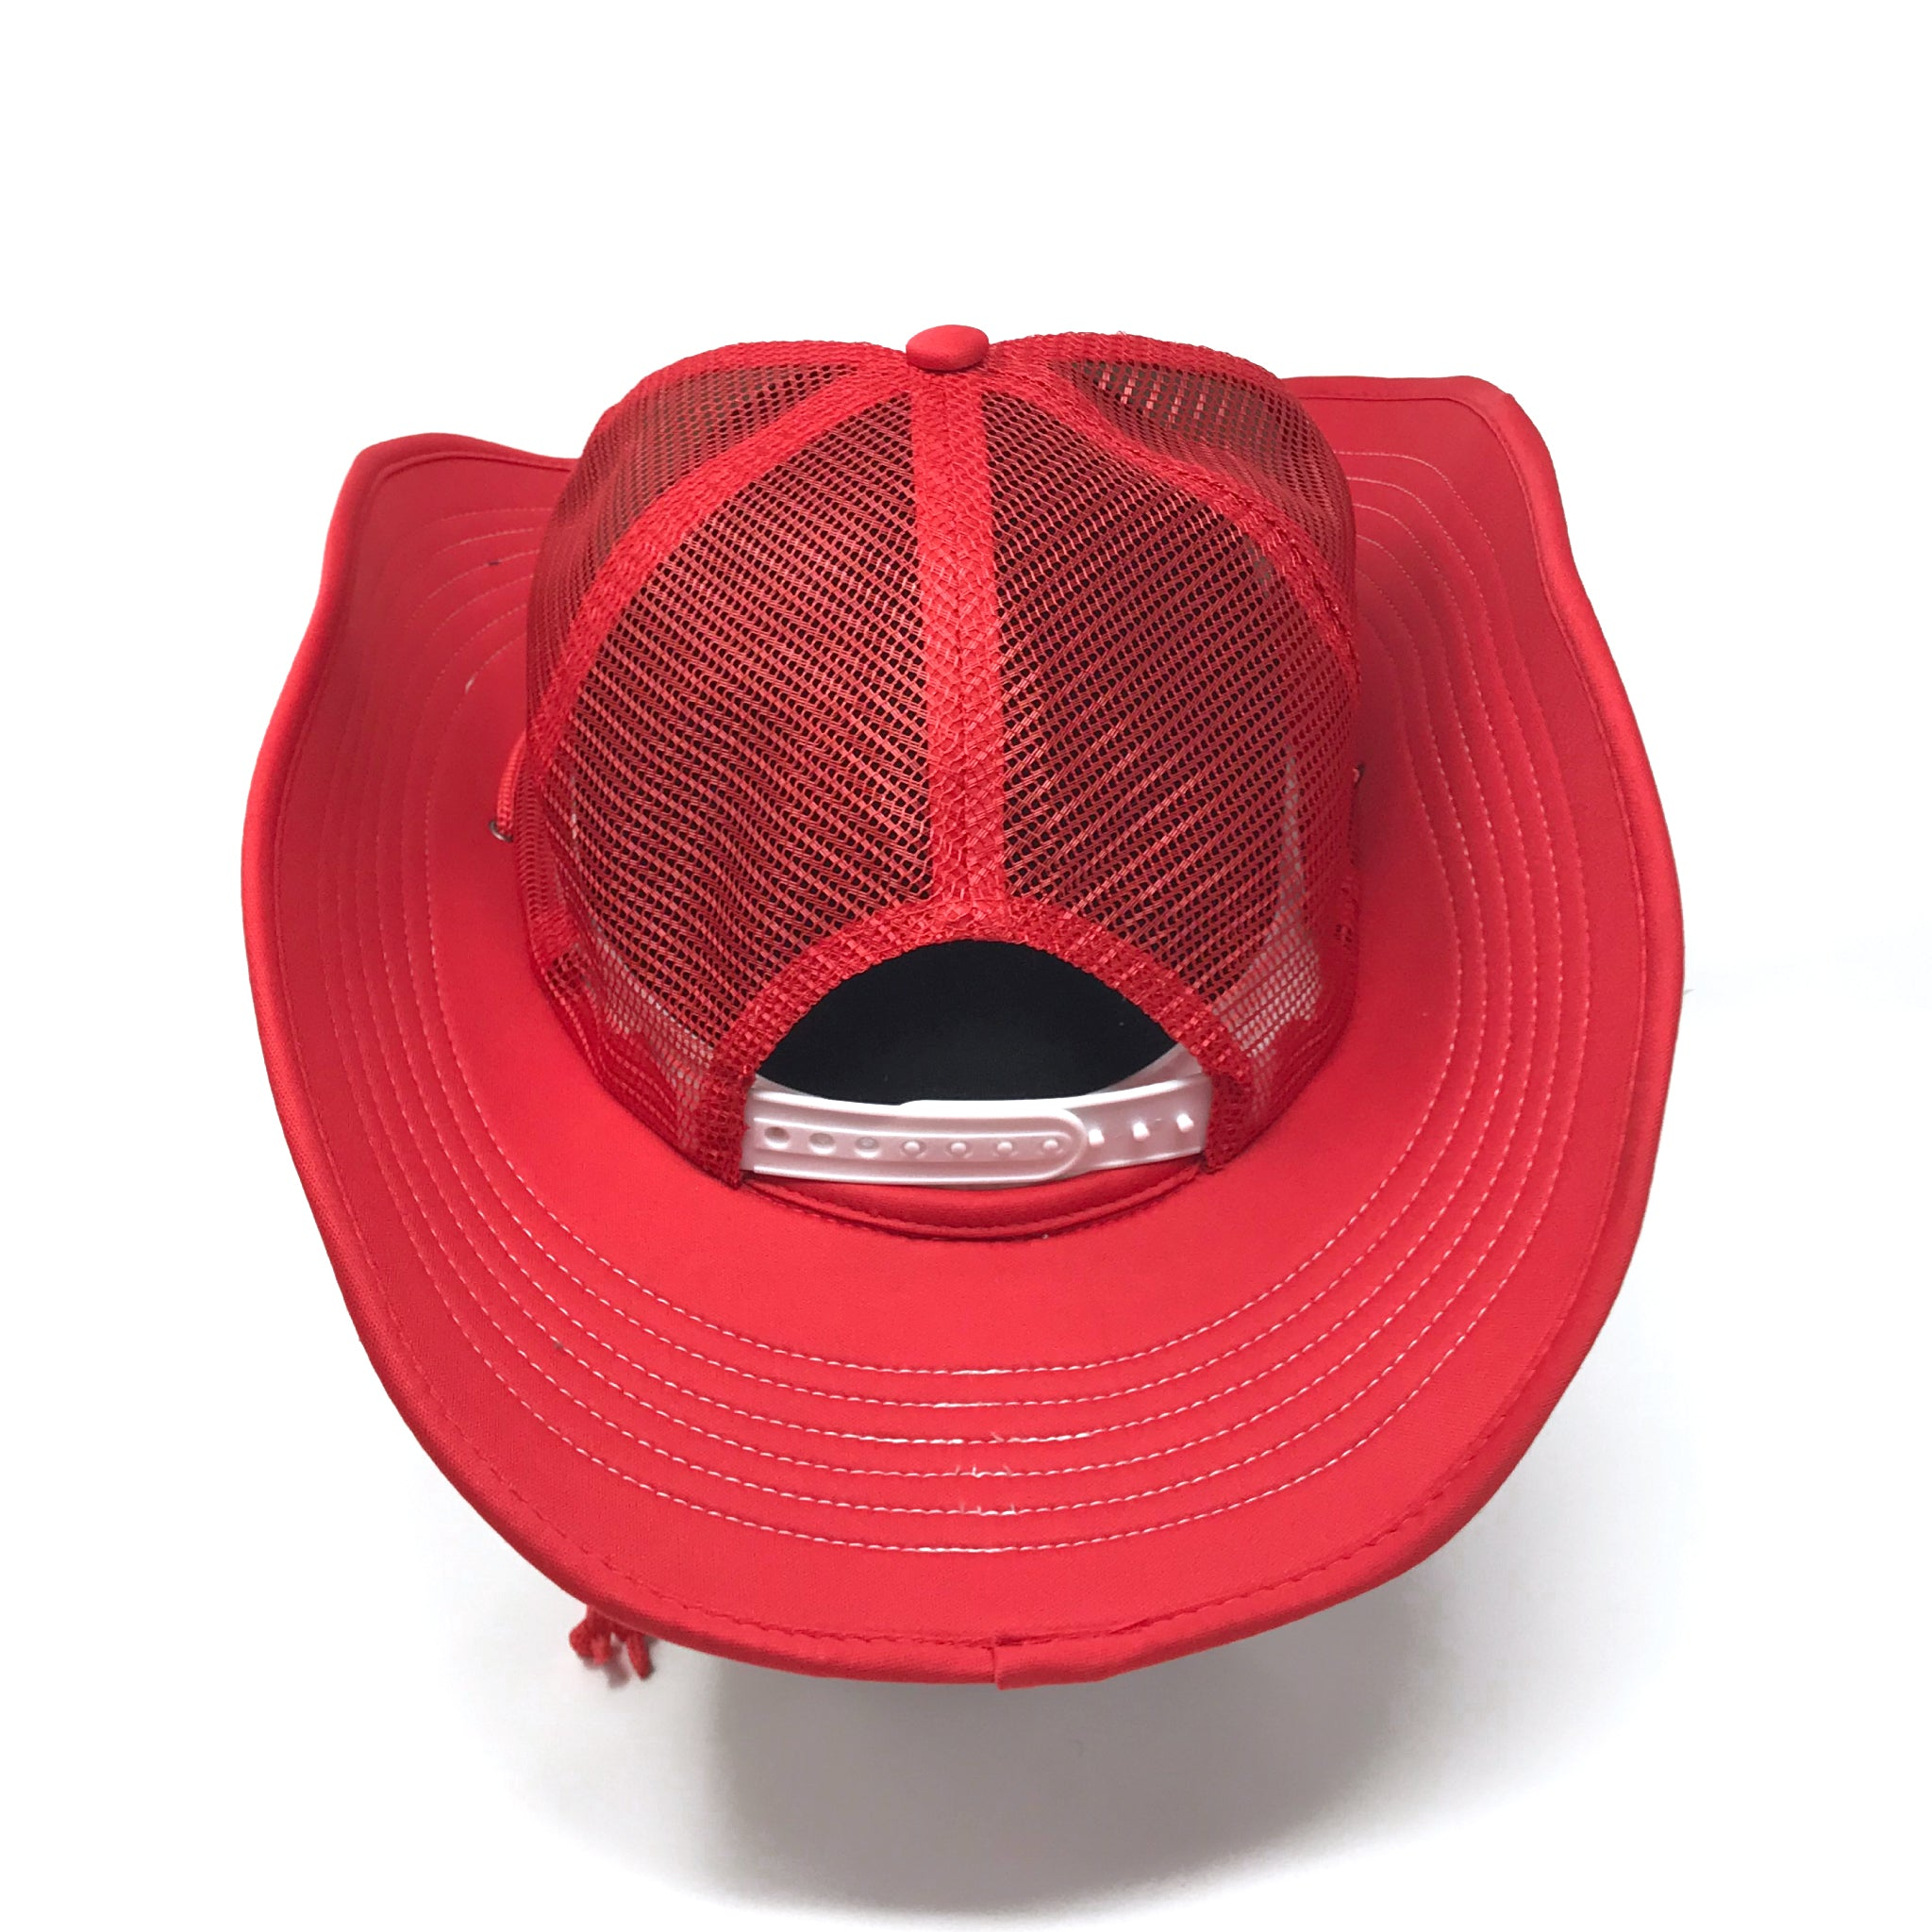 36a4d71a950 Red C4 RnR Snapback Bucket Hat - Care Four